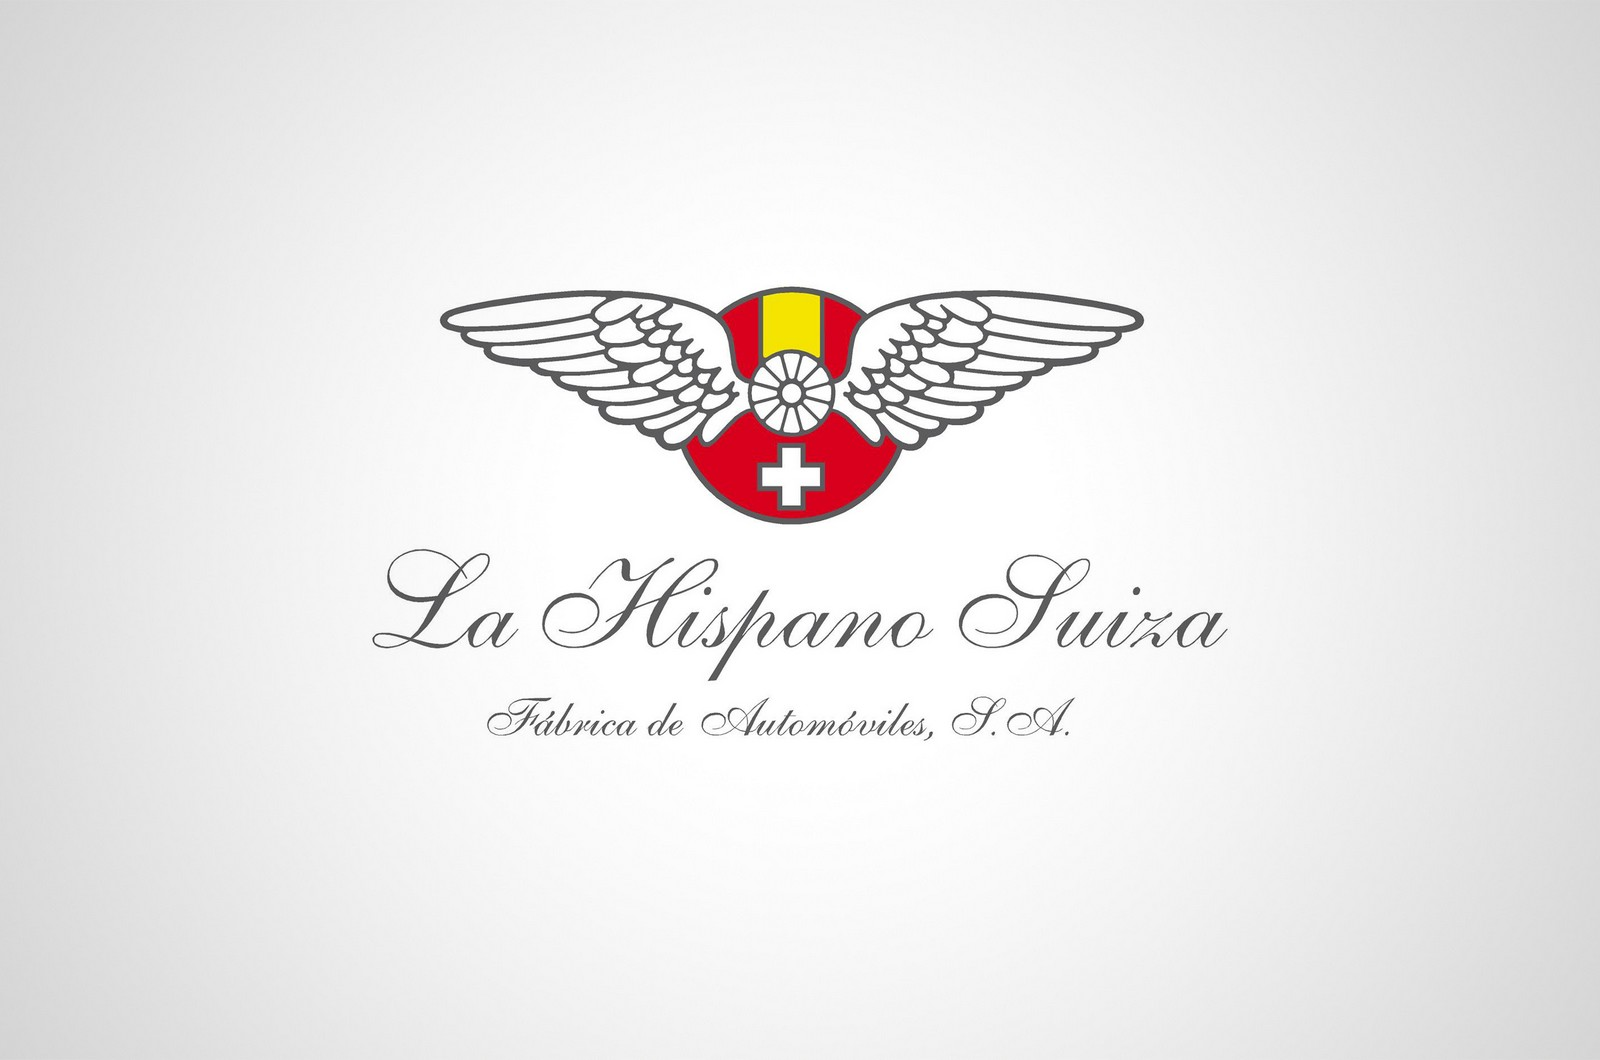 Logos from the original Hispano-Suiza